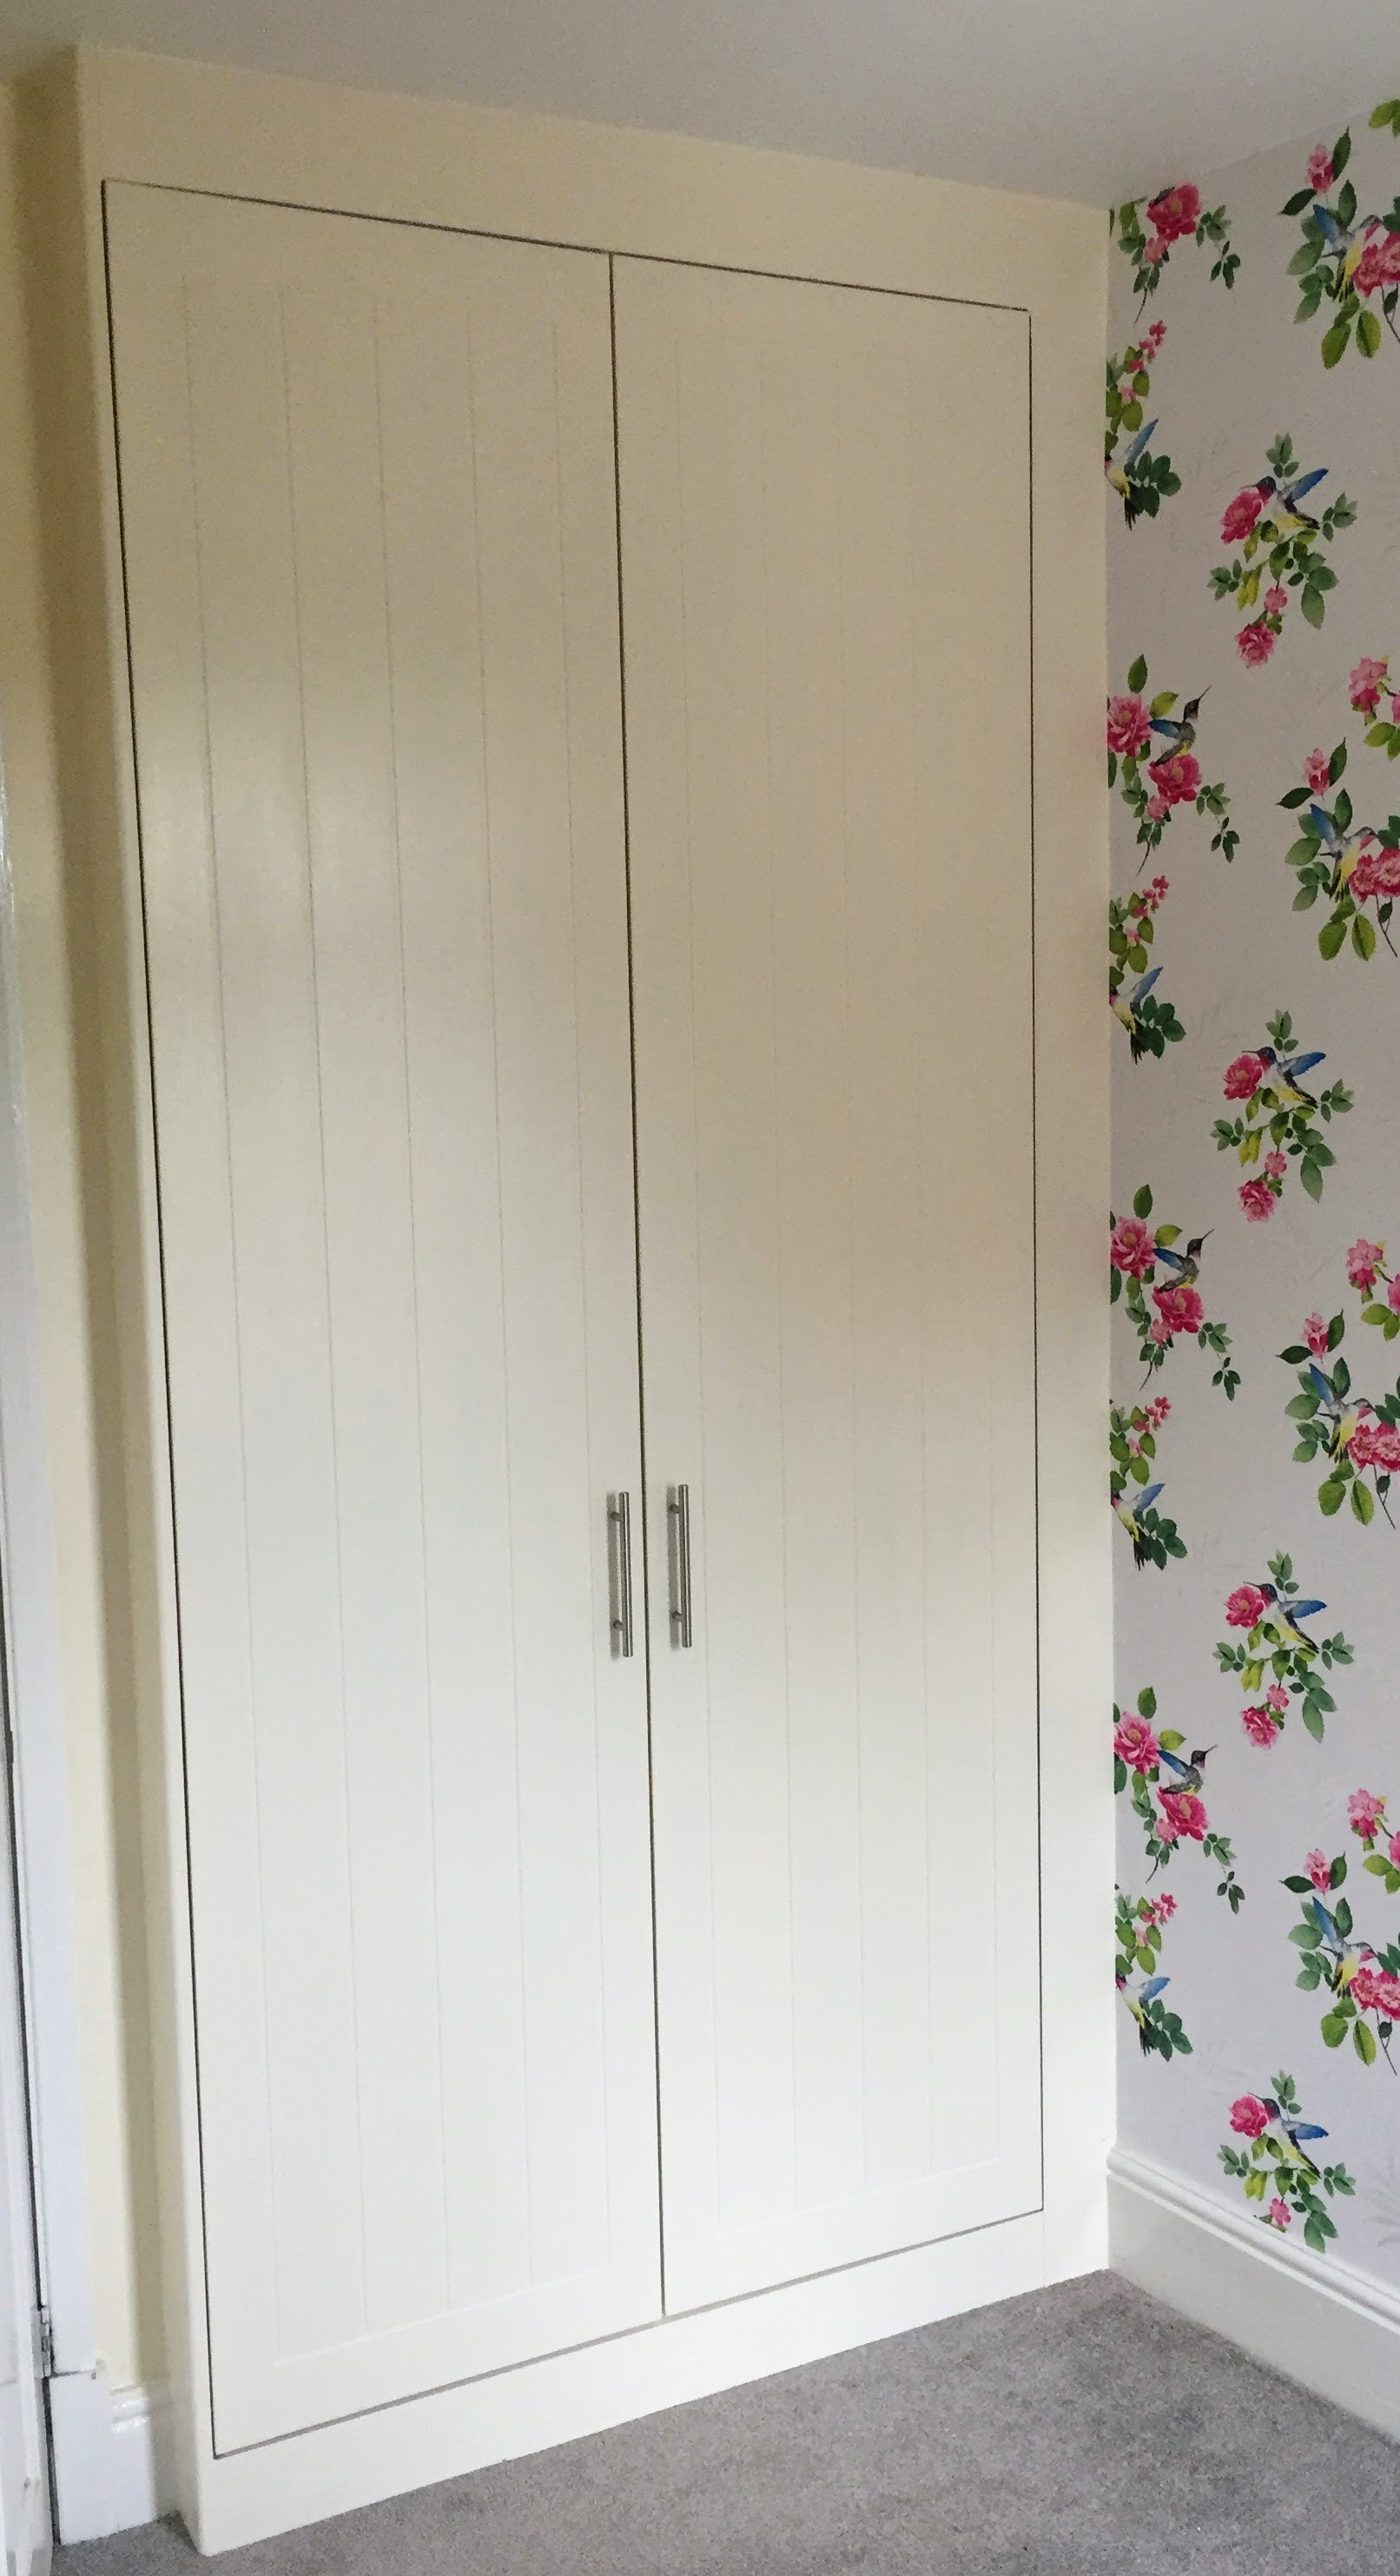 Wardrobes (bedroom alcove)